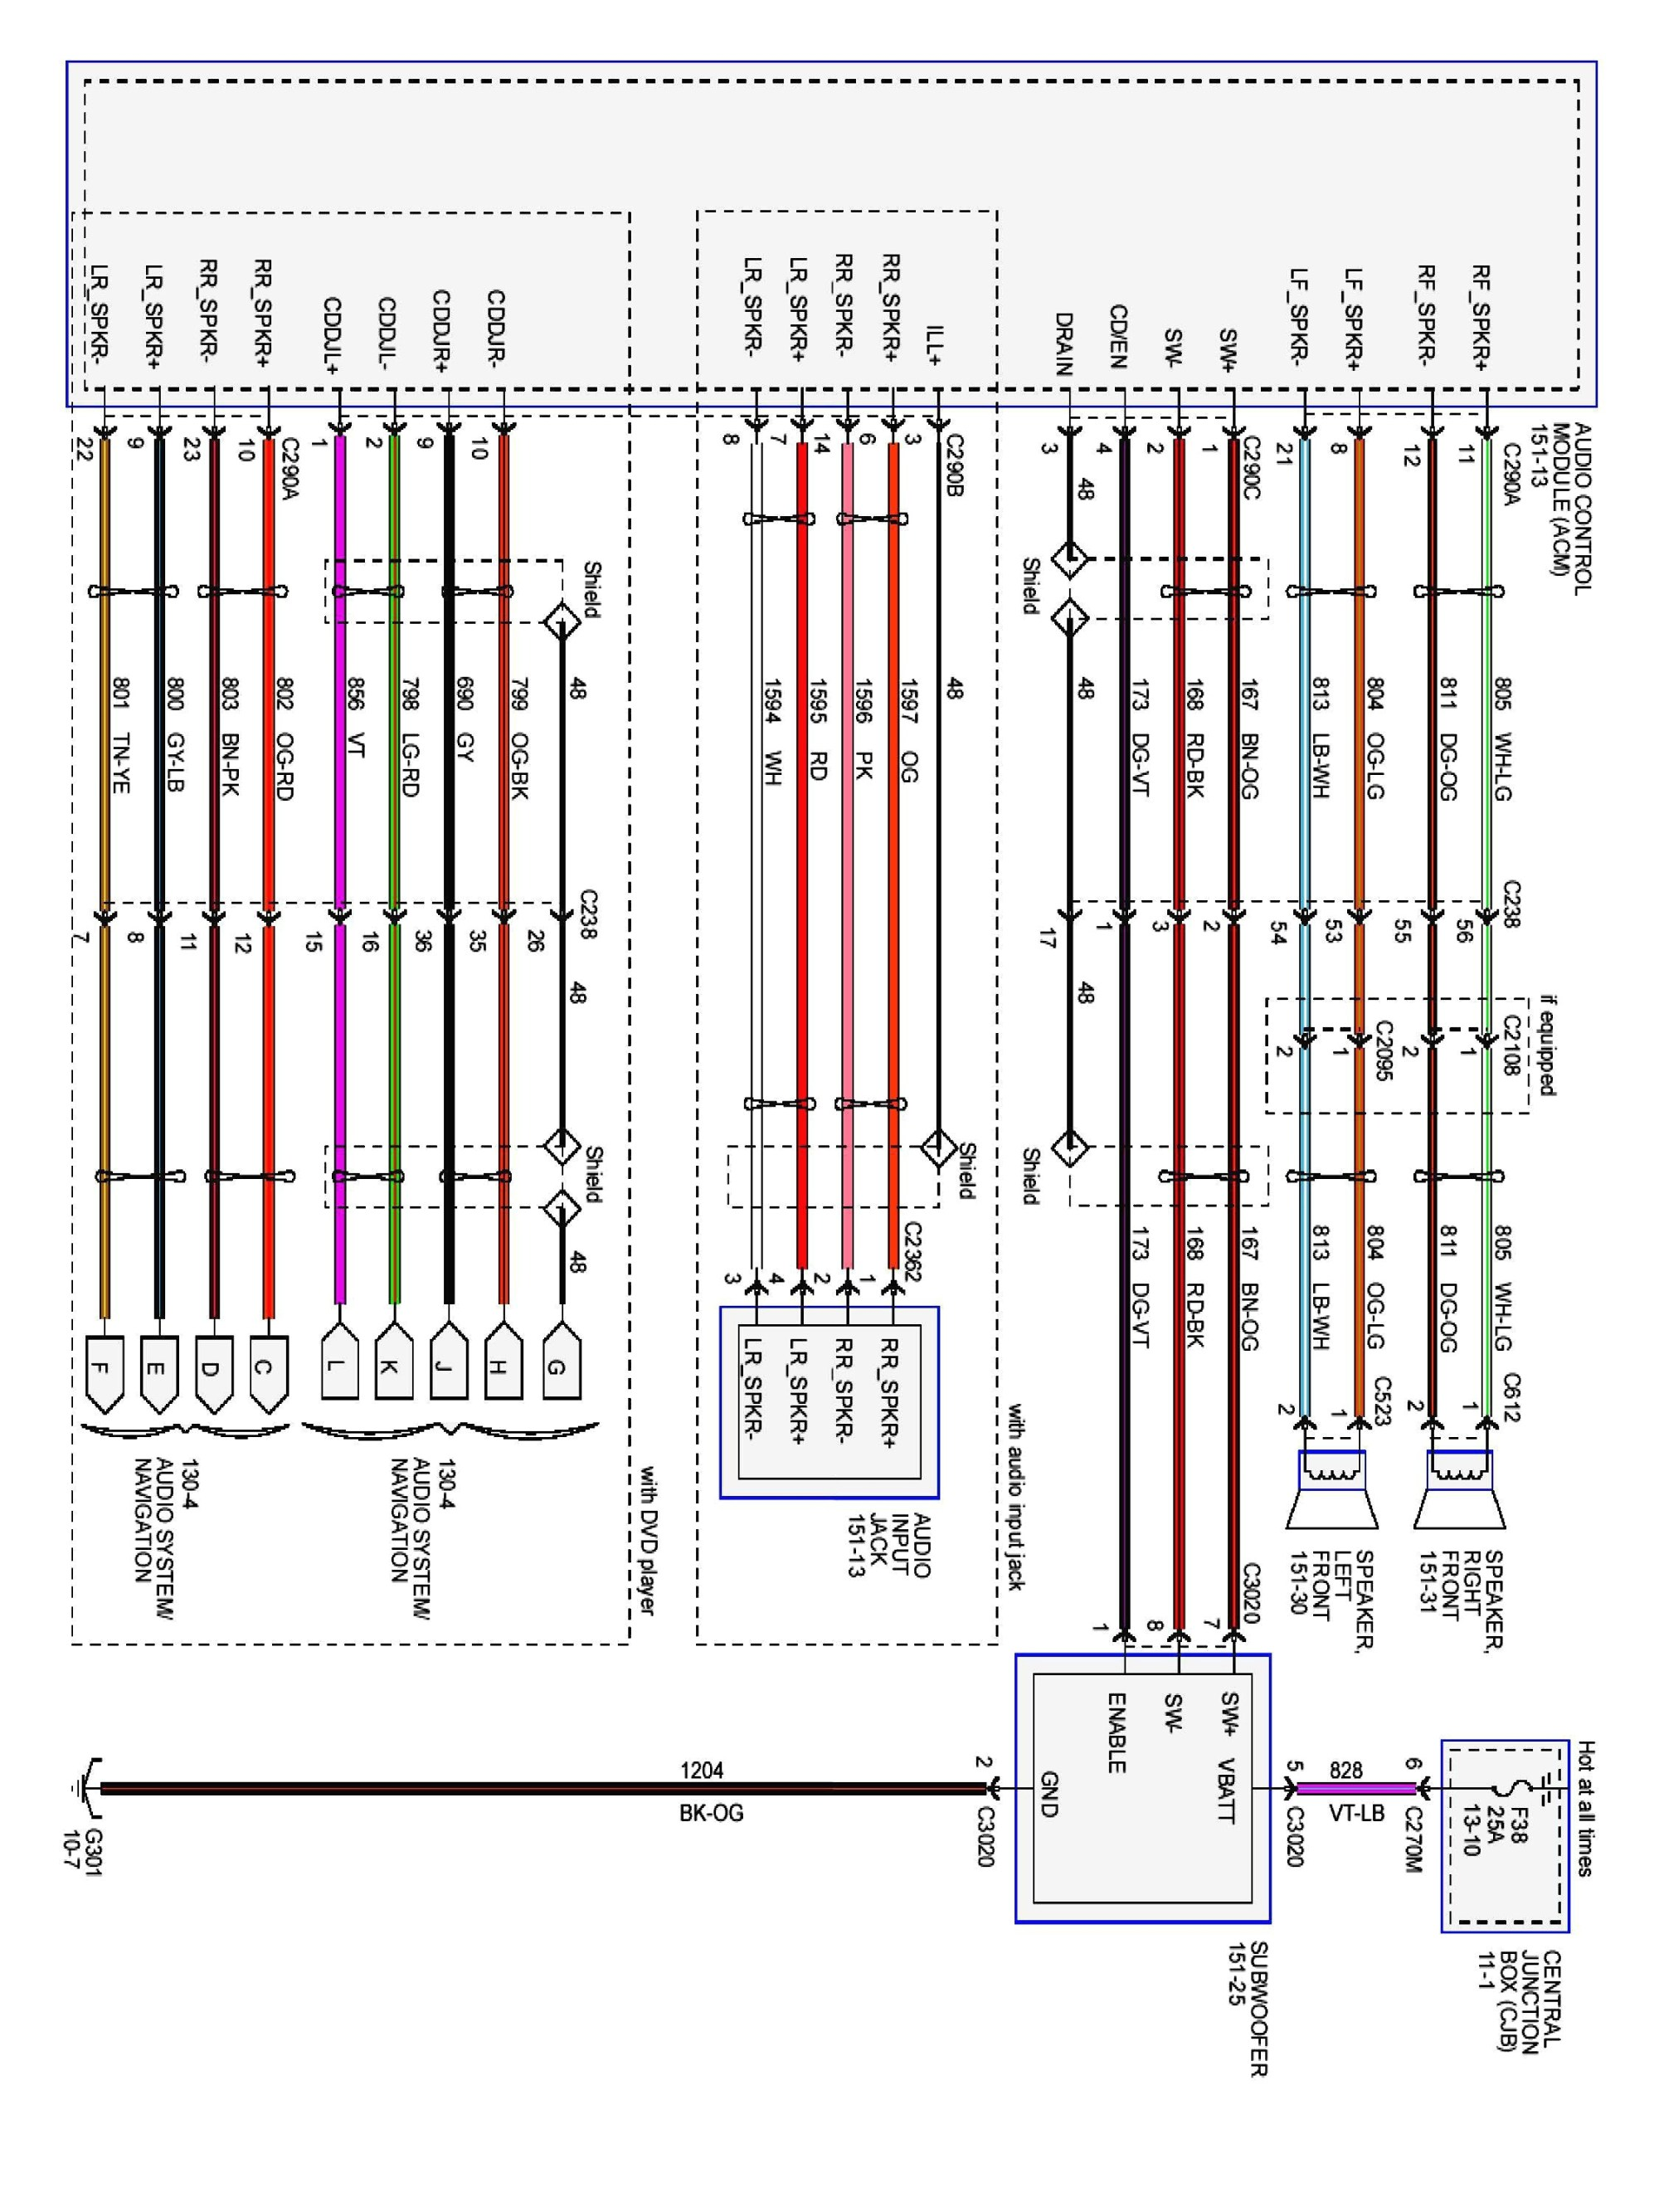 hight resolution of 2008 ford f350 stereo wiring diagram wiring diagram inside